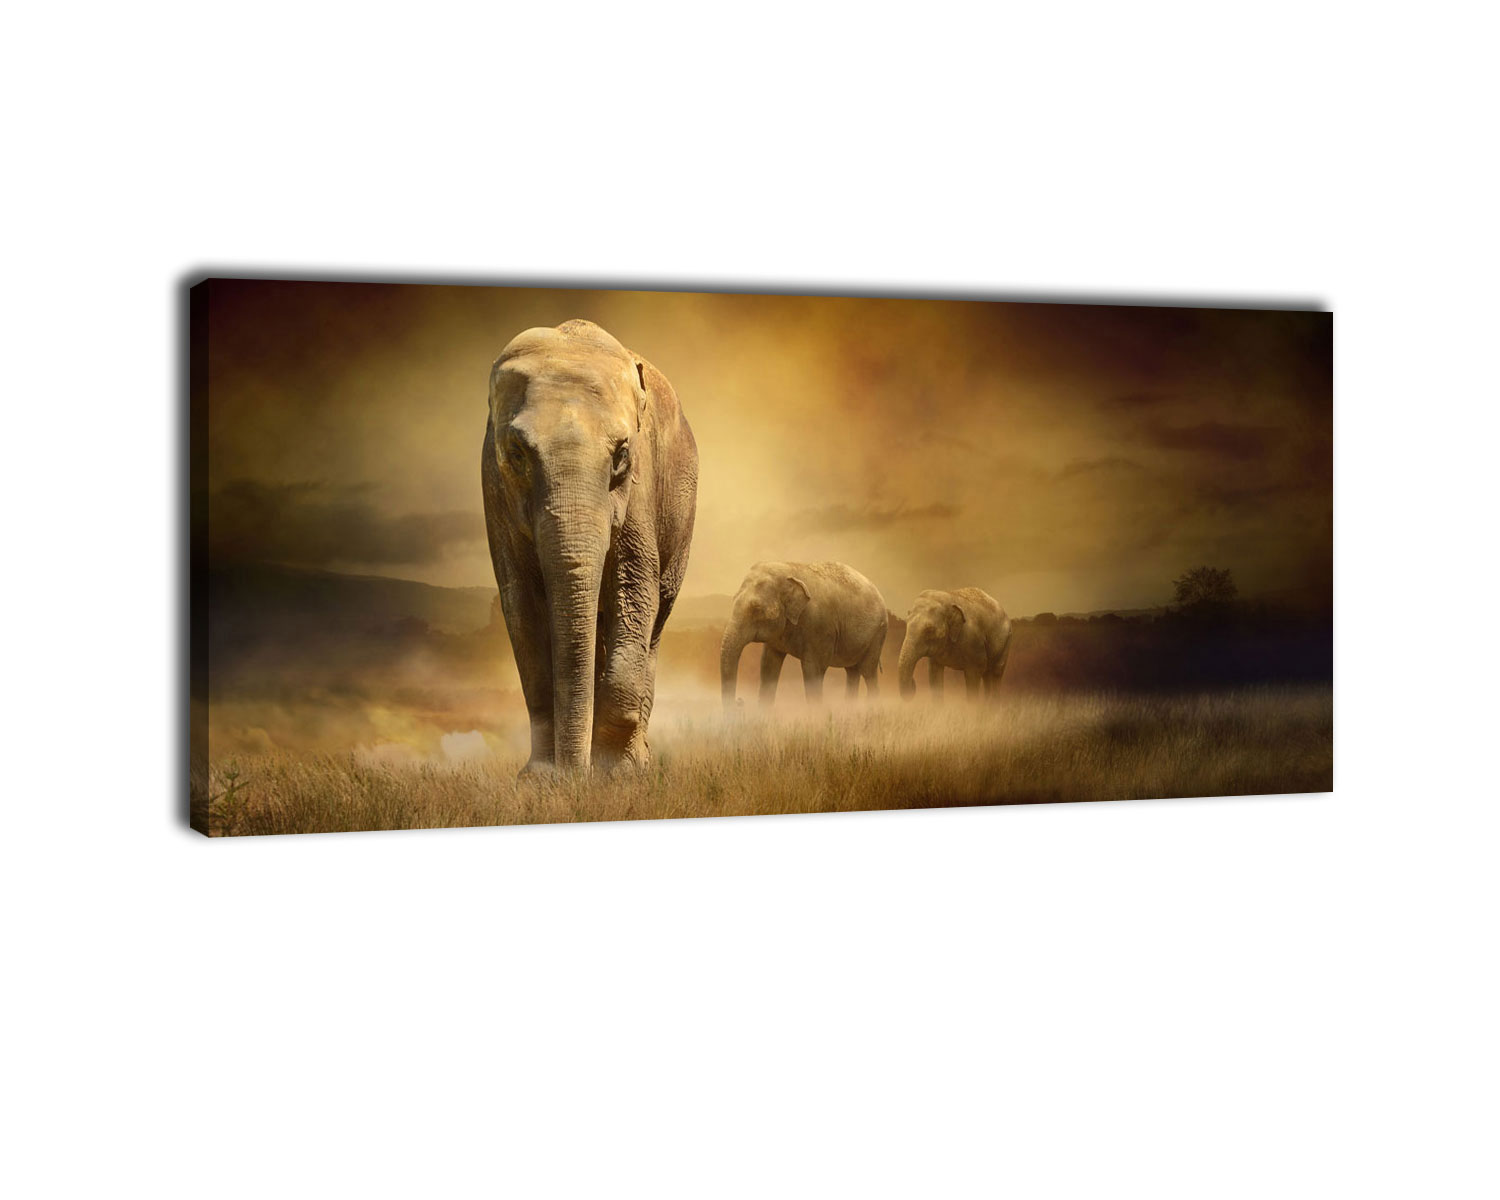 leinwandbild steppenelefant afrika bild auf leinwand. Black Bedroom Furniture Sets. Home Design Ideas